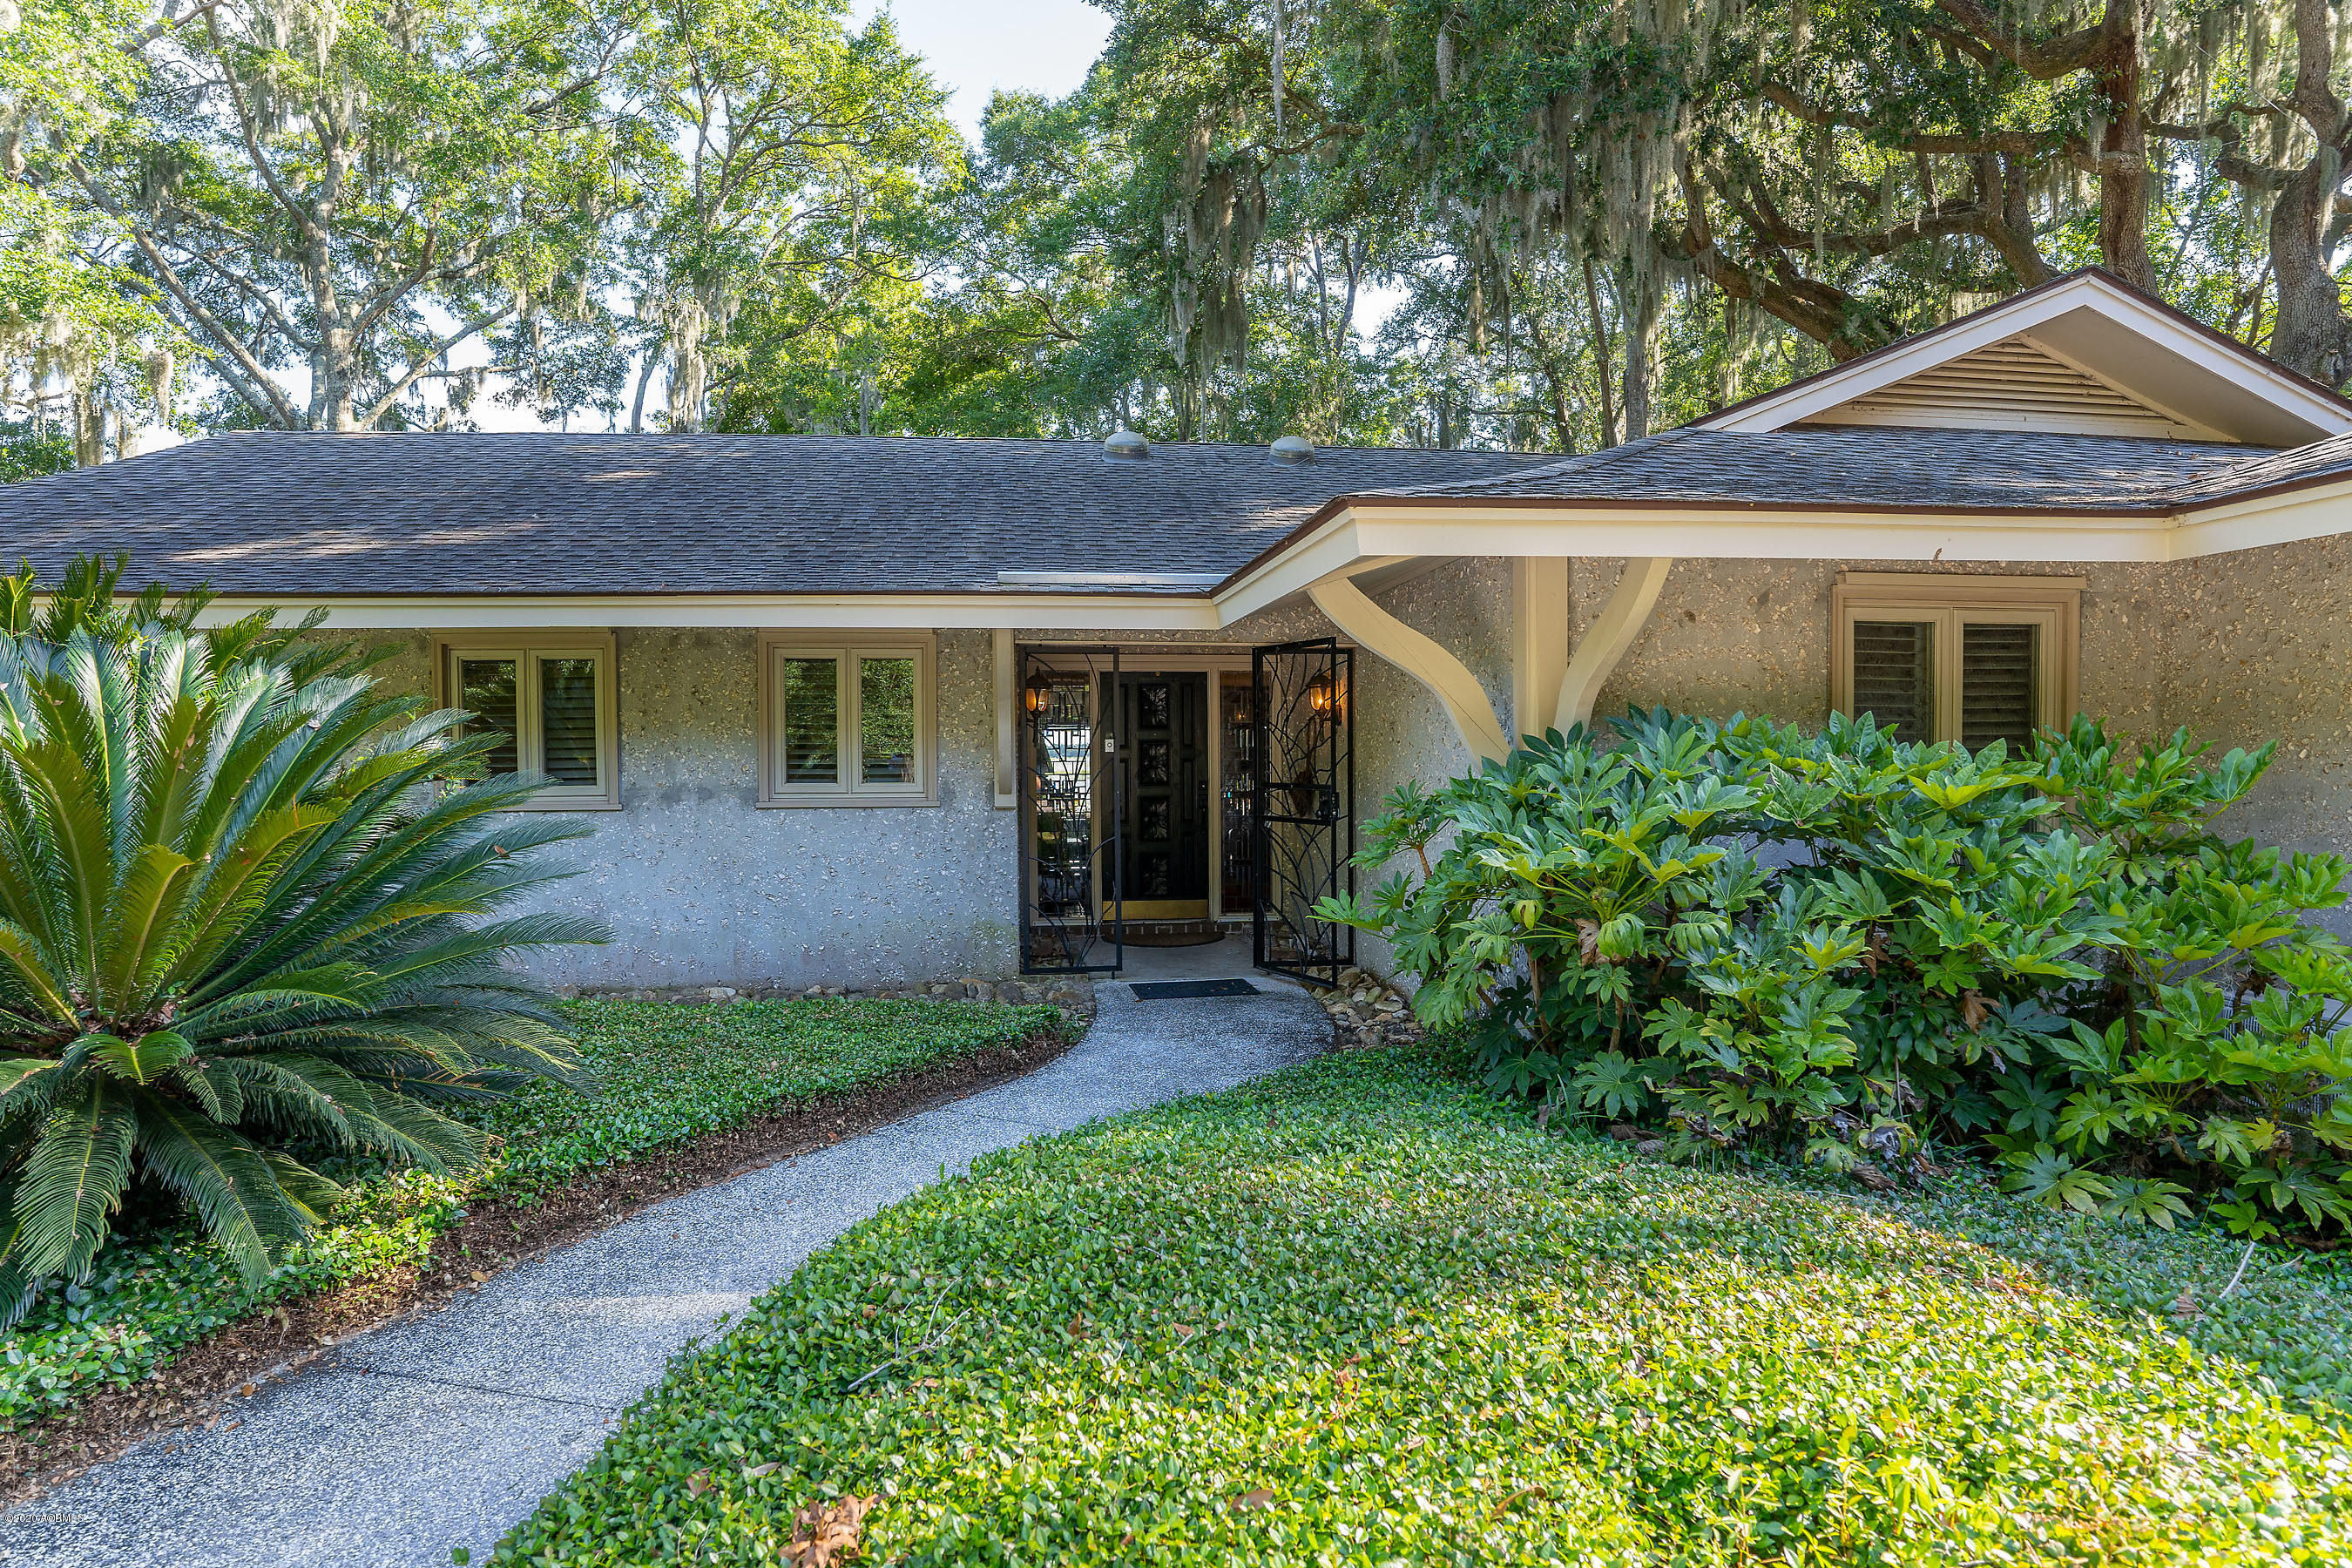 Photo of 10 Old Ferry Cove, Beaufort, SC 29907